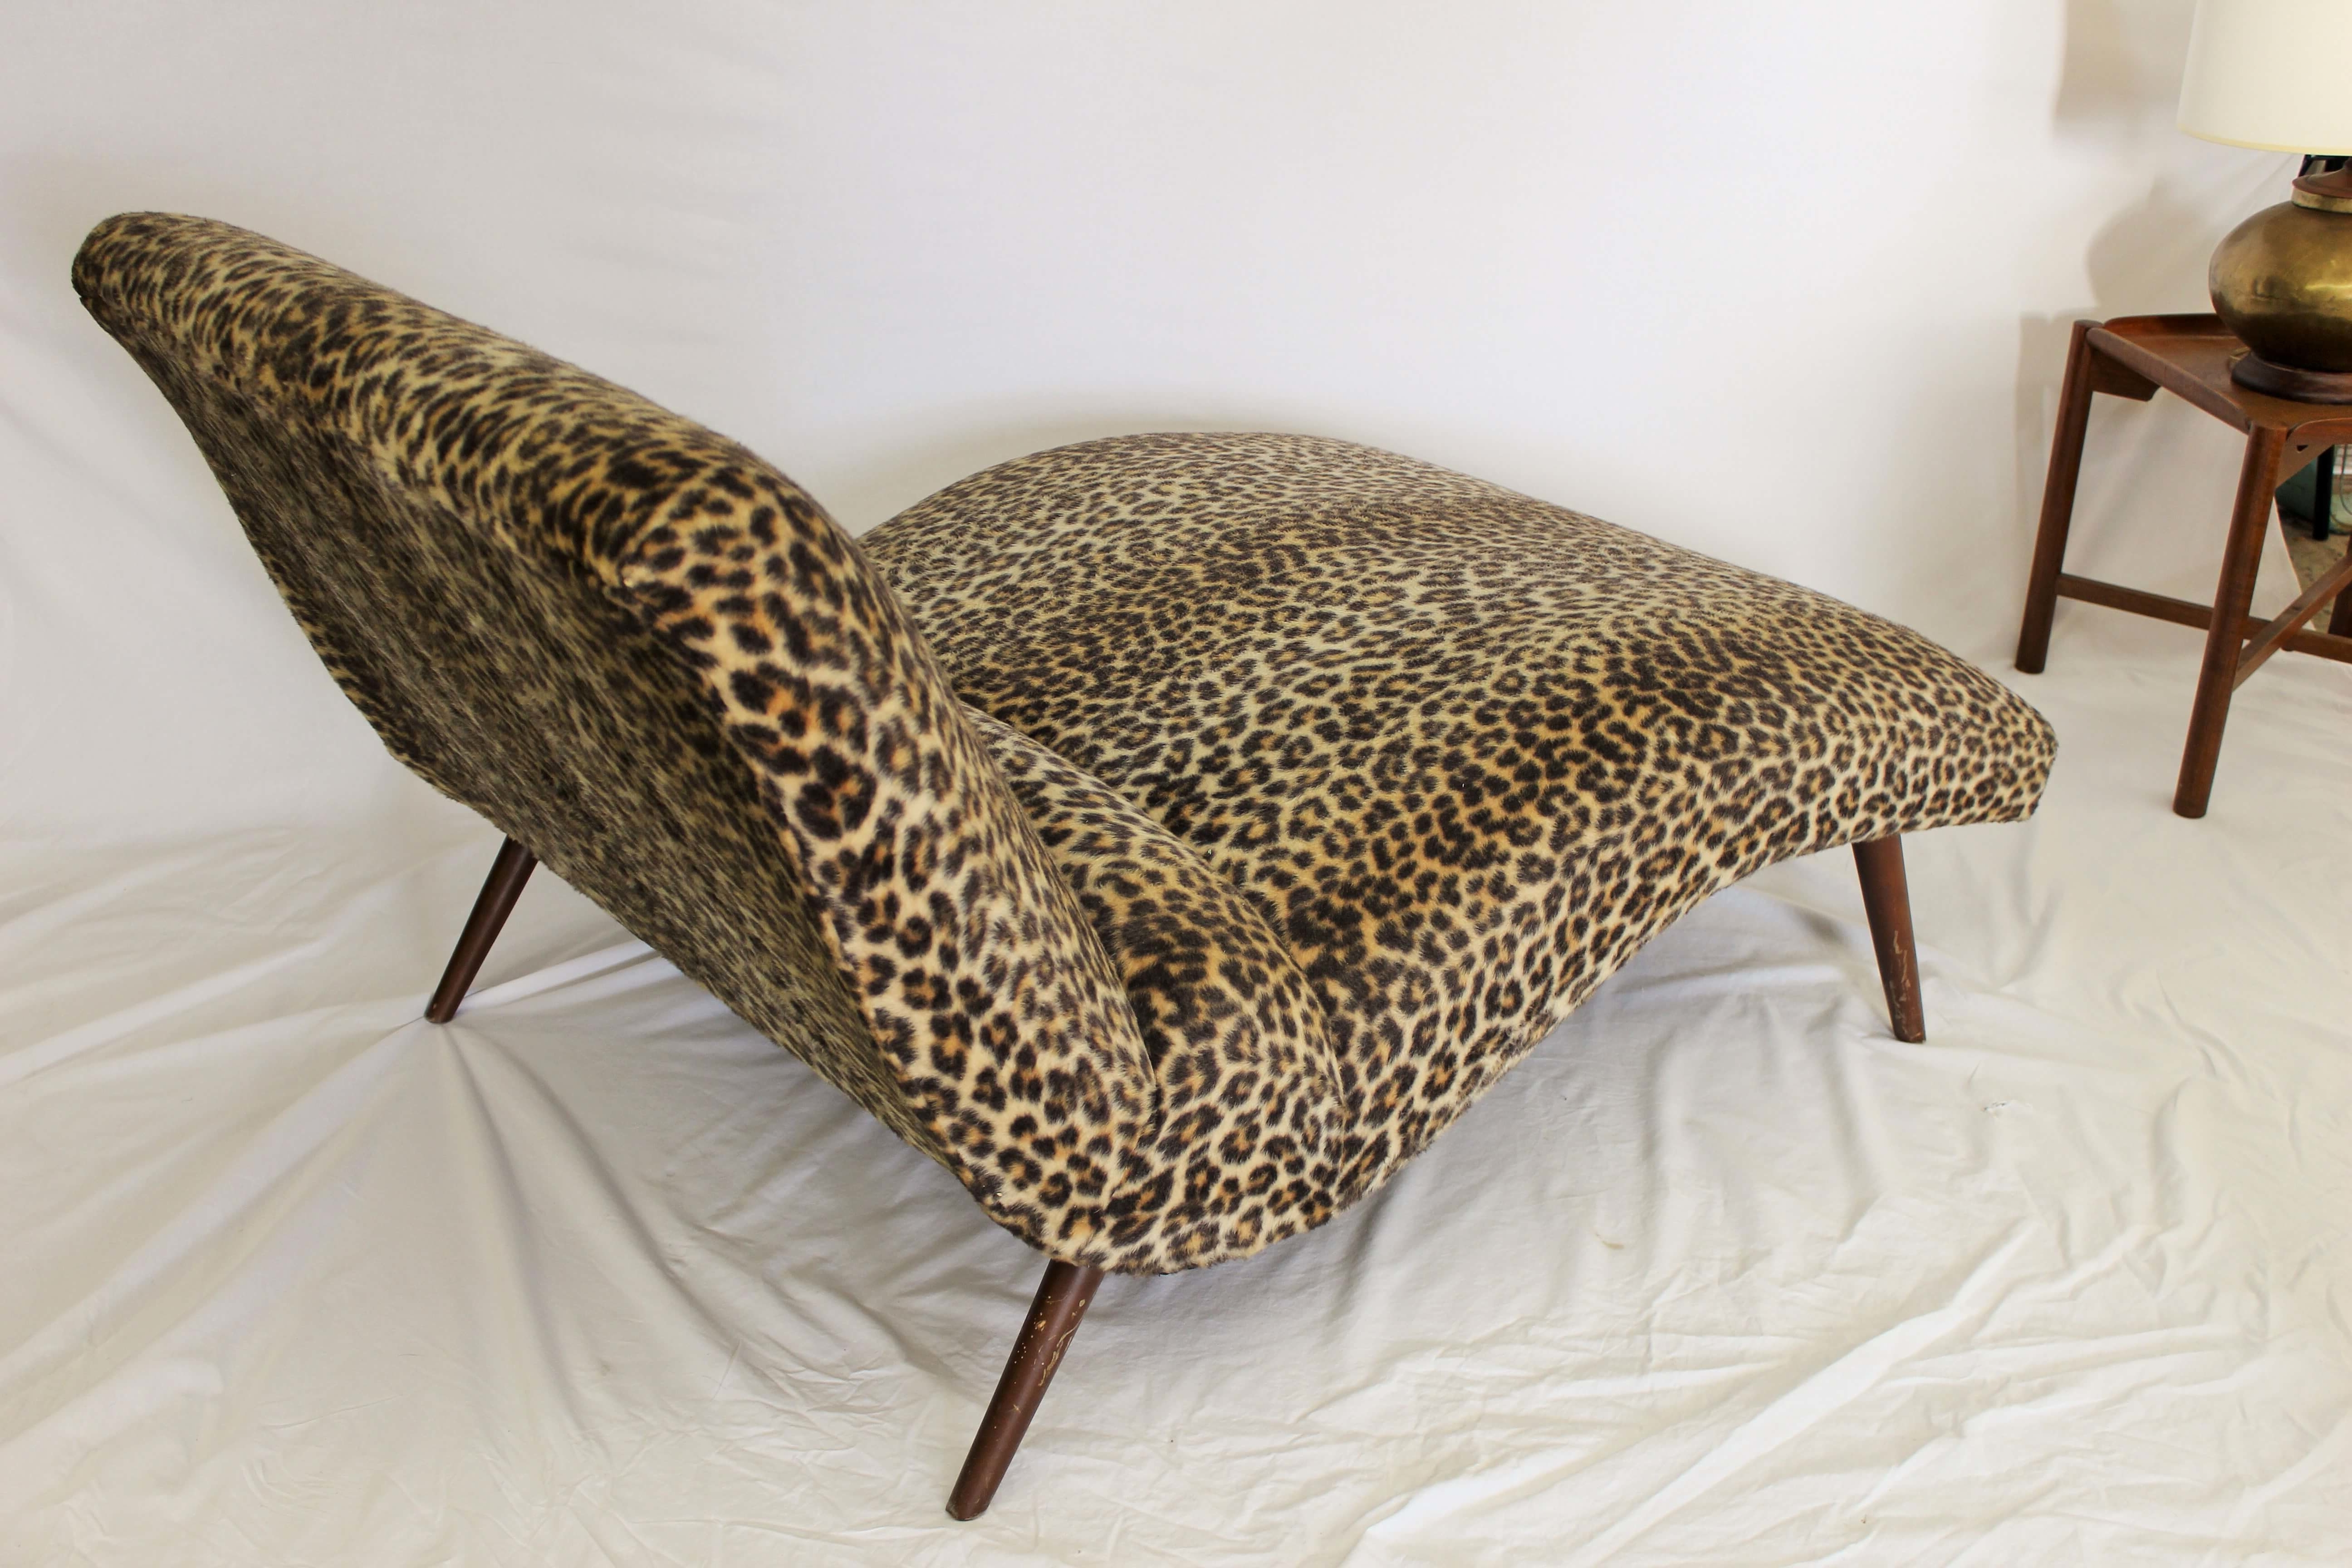 Leopard Chaises Regarding Widely Used Leopard Chaise Lounge – Leopard Chaise Lounge Chair Animal Print (View 15 of 15)